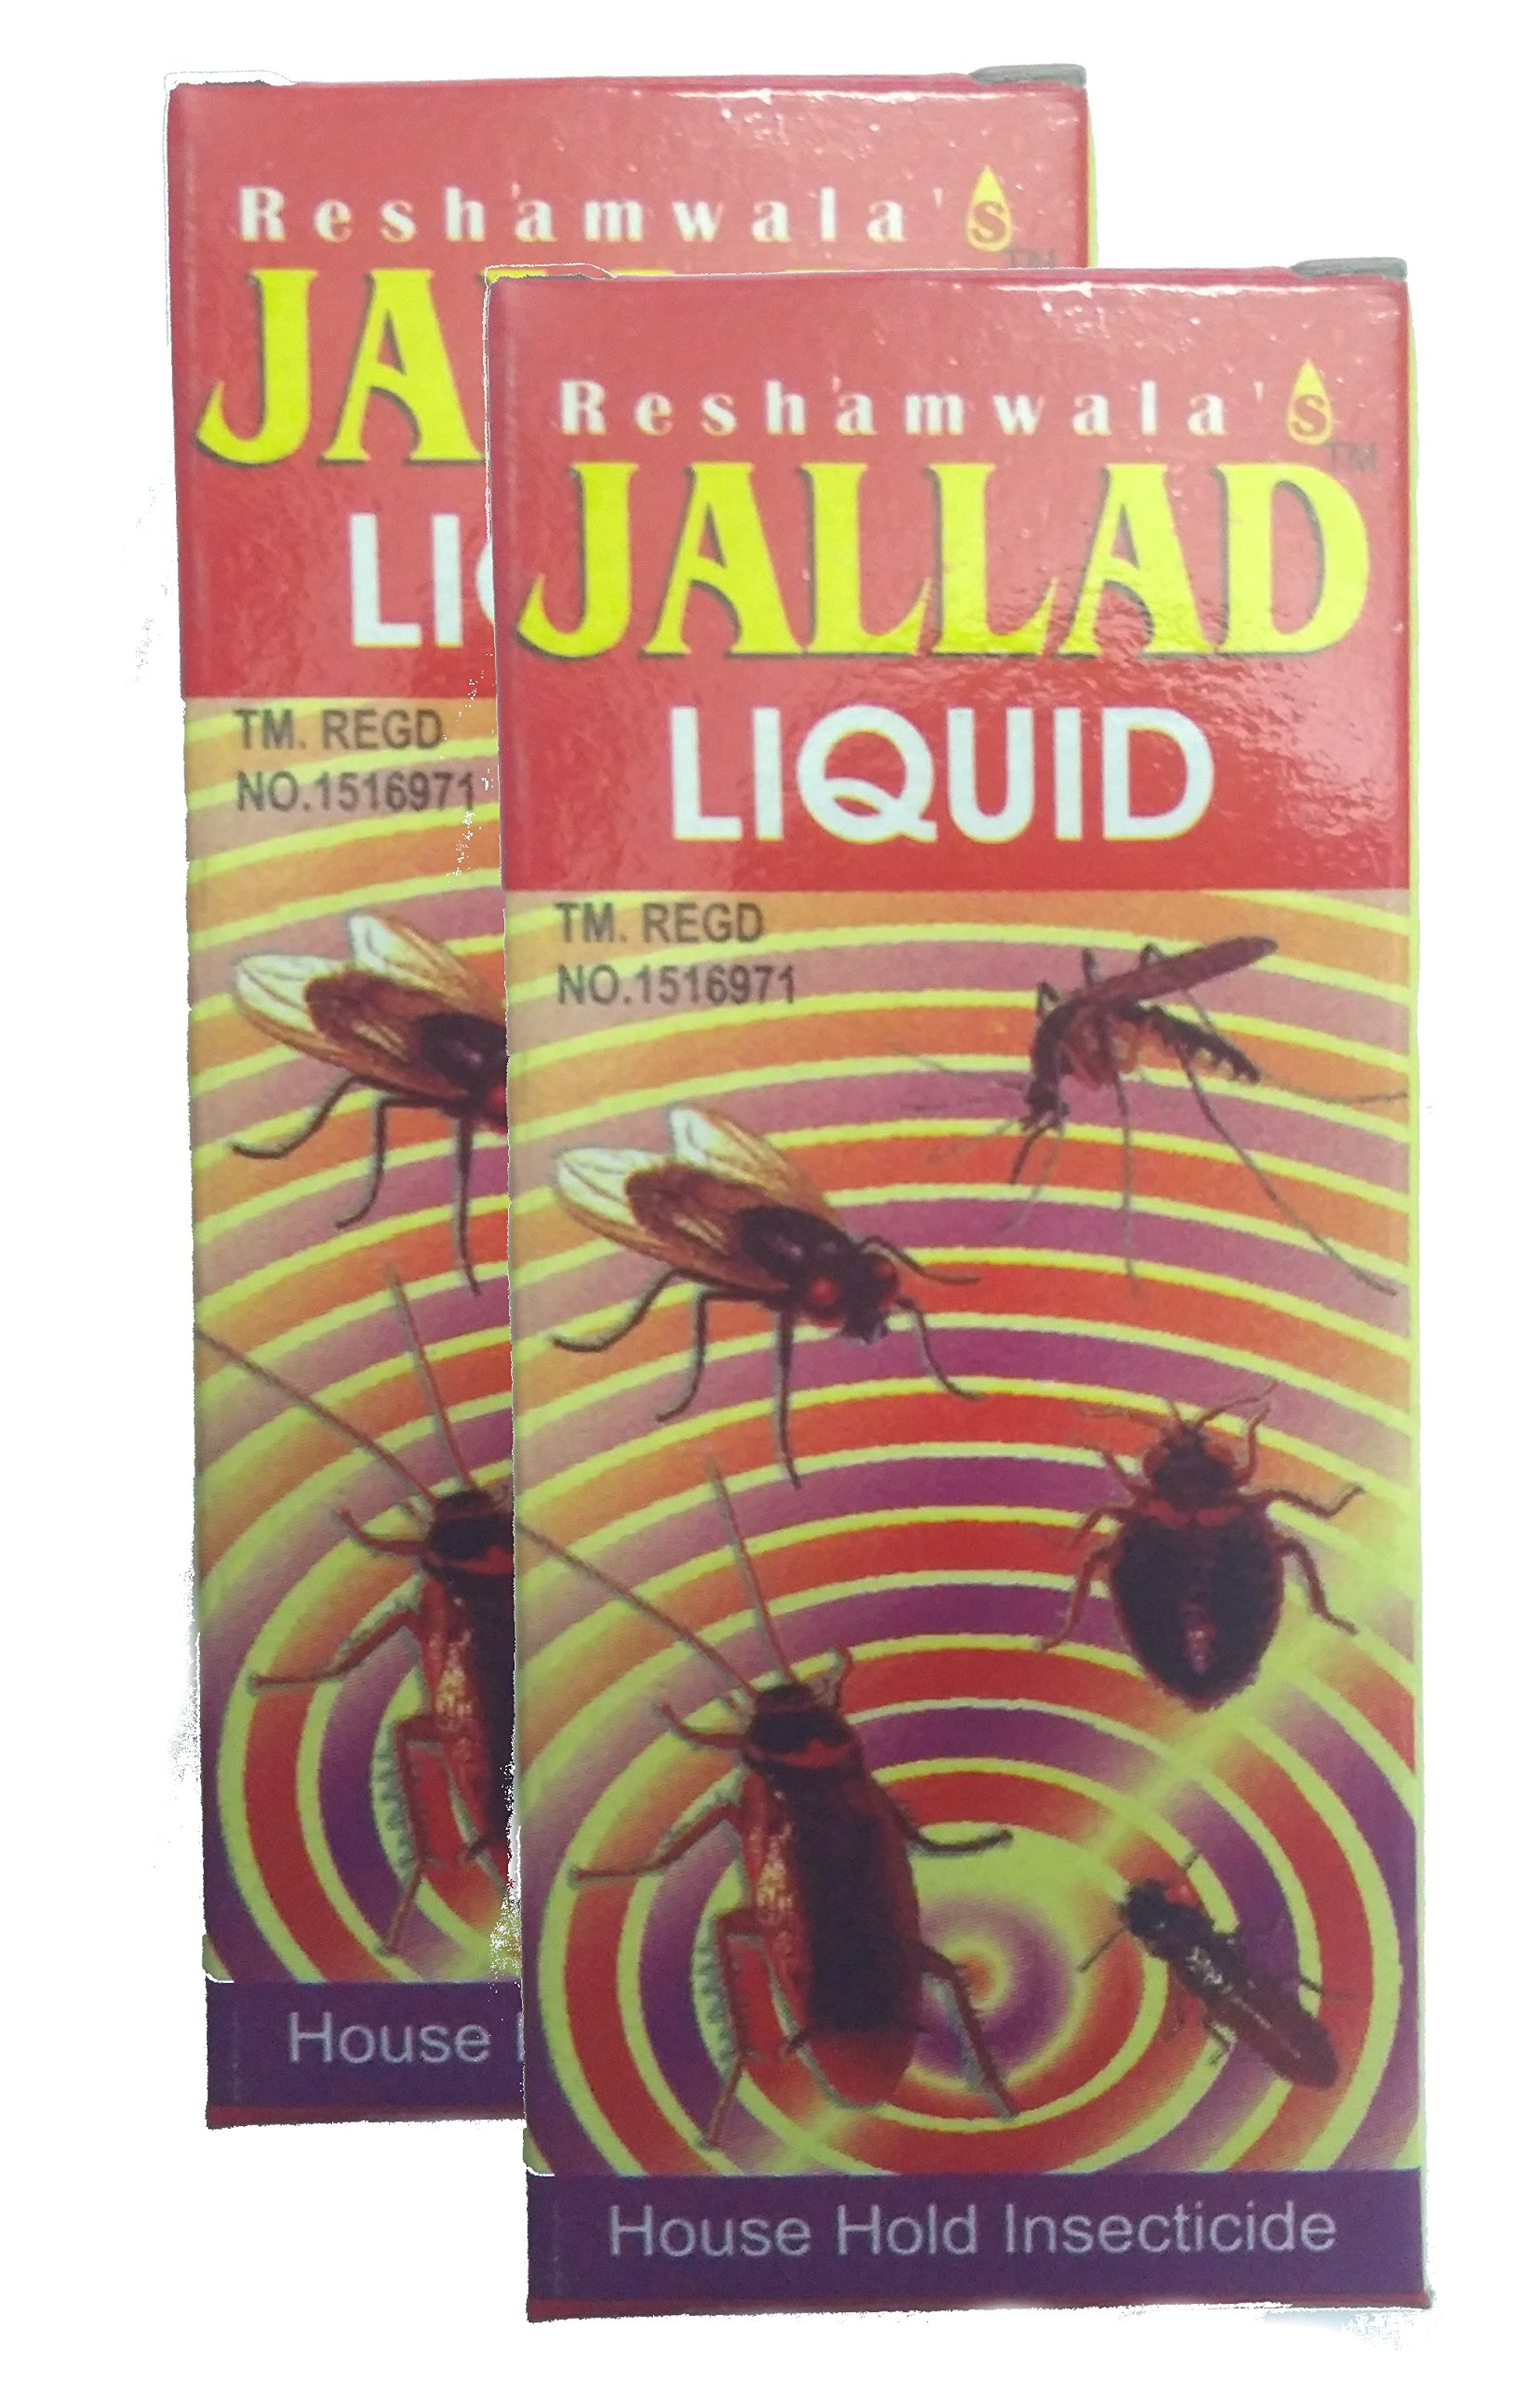 MMR™ Jallad Liquid Most Powerfull Strong House Hold Insecticide pest Control Killer 100ml Concentrated for 2 Liter product image